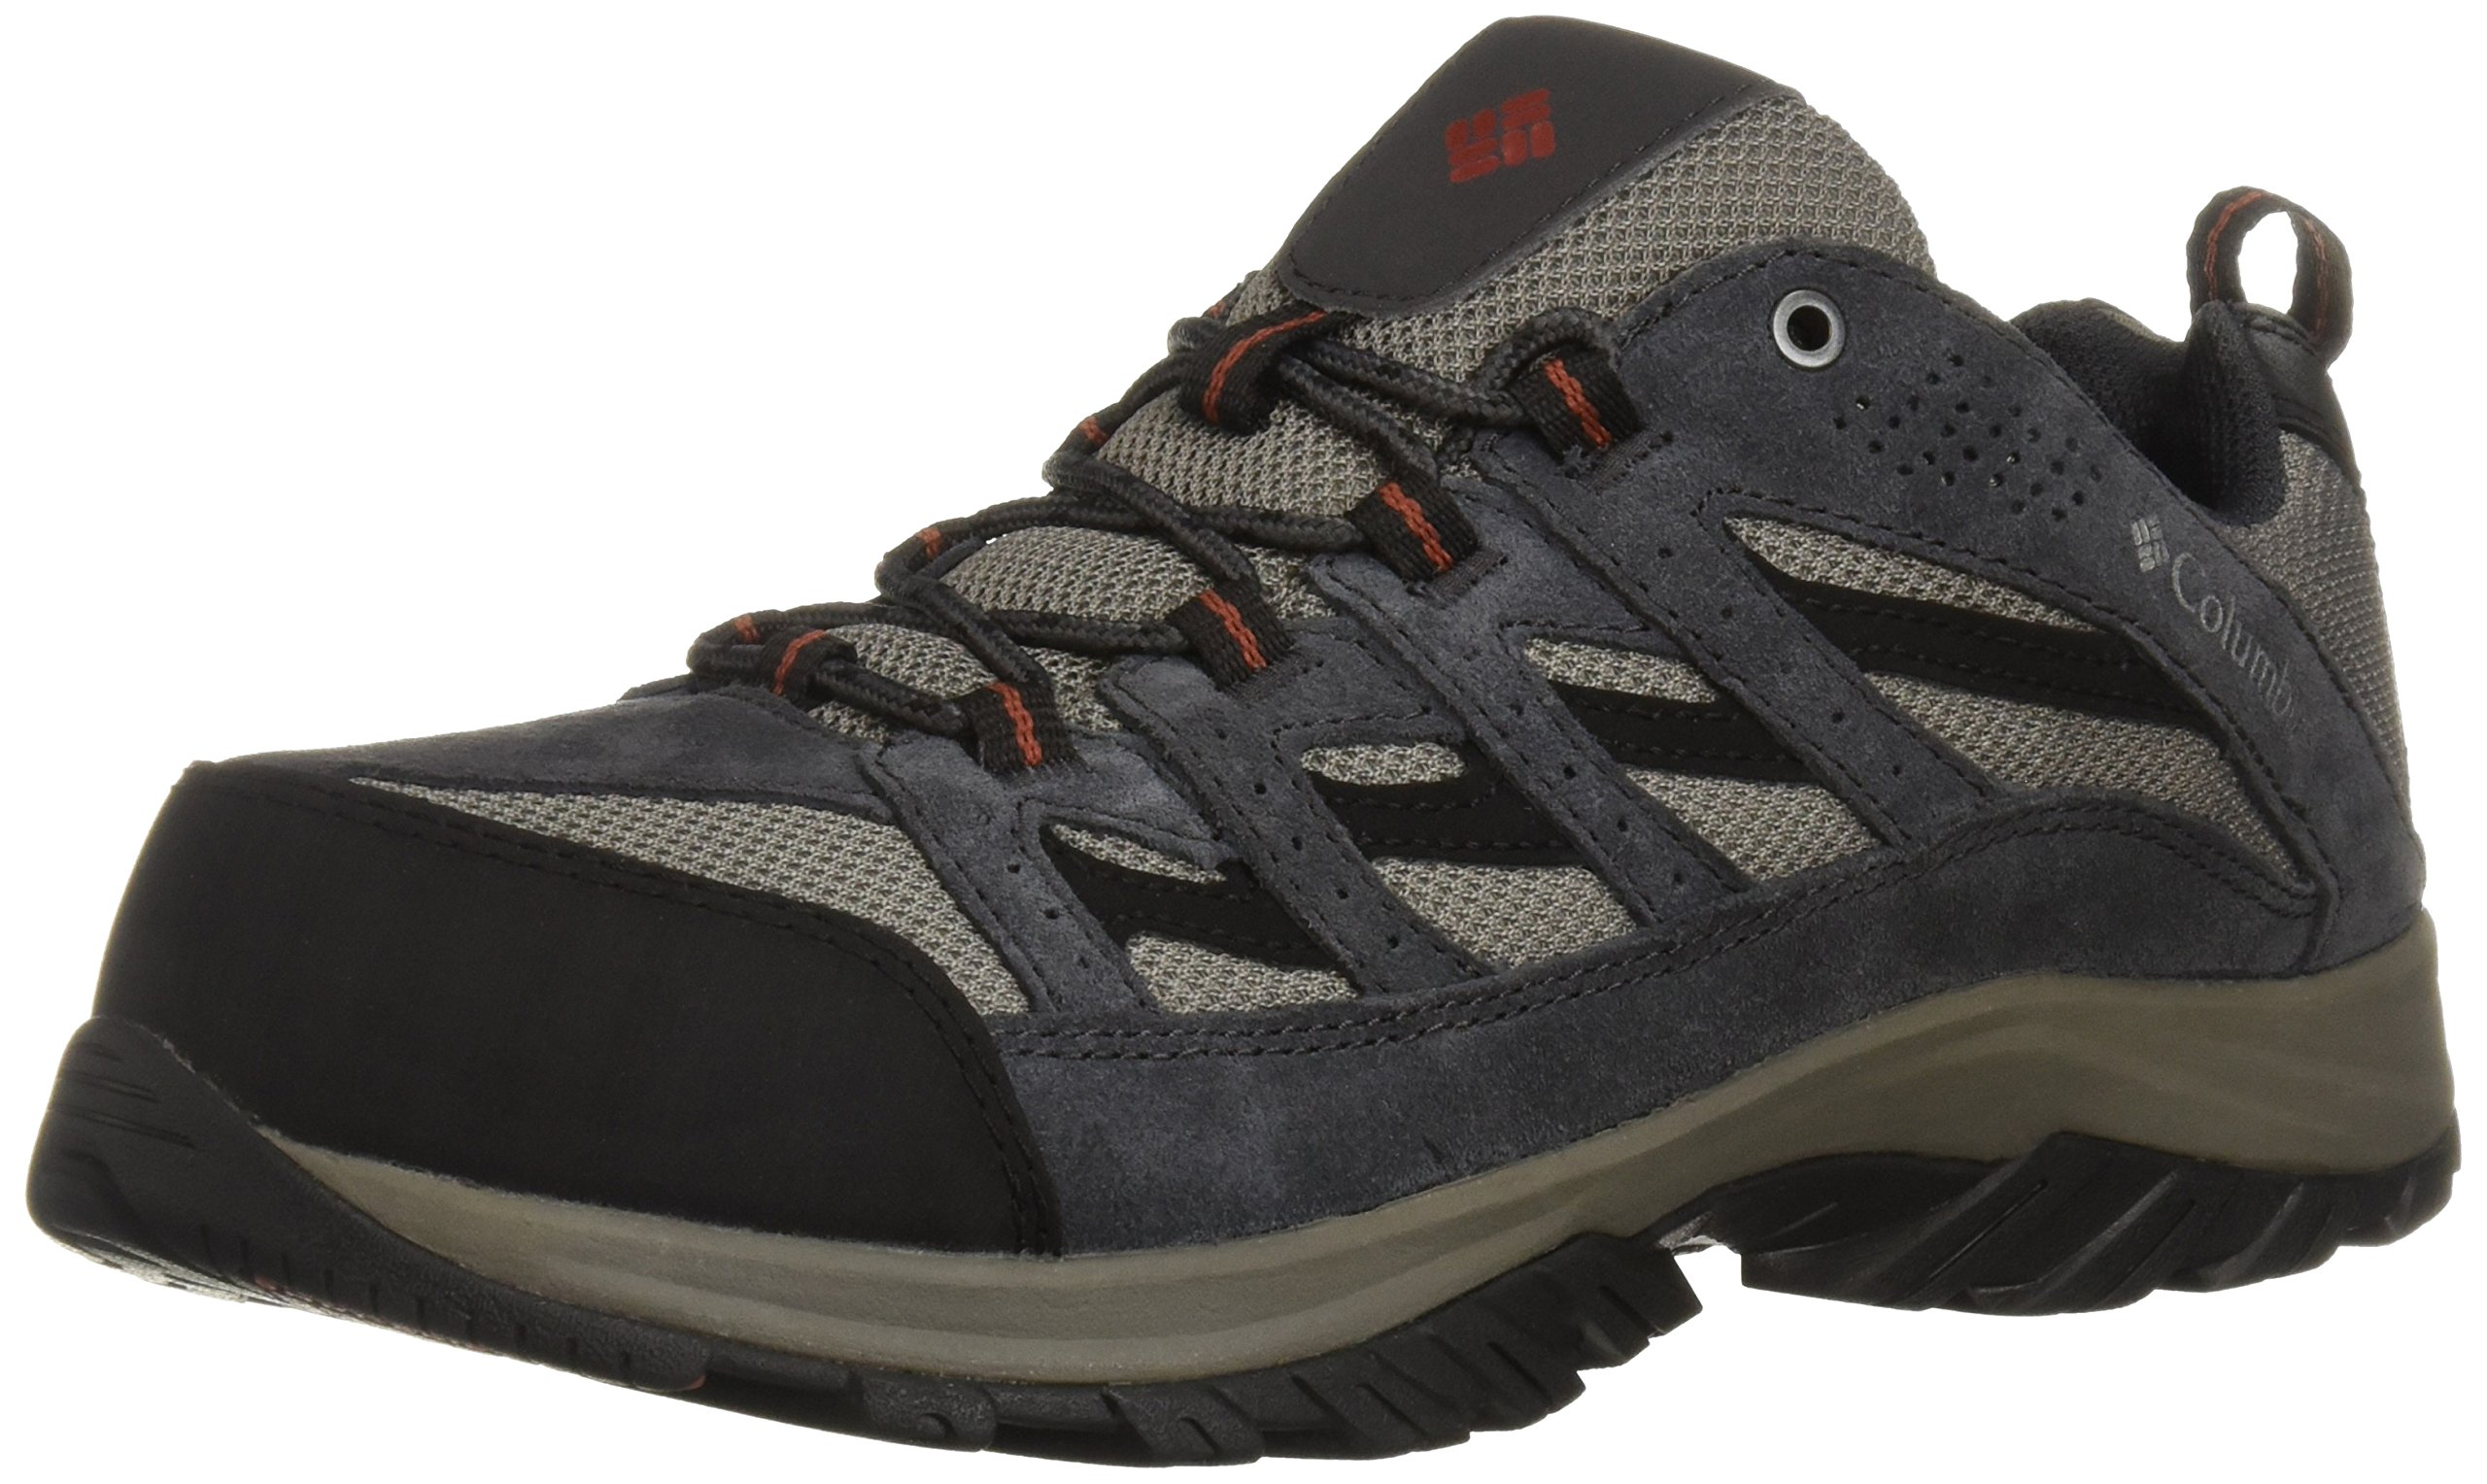 Columbia Men's Crestwood Wide Hiking Shoe, Quarry, Rusty, 14 US